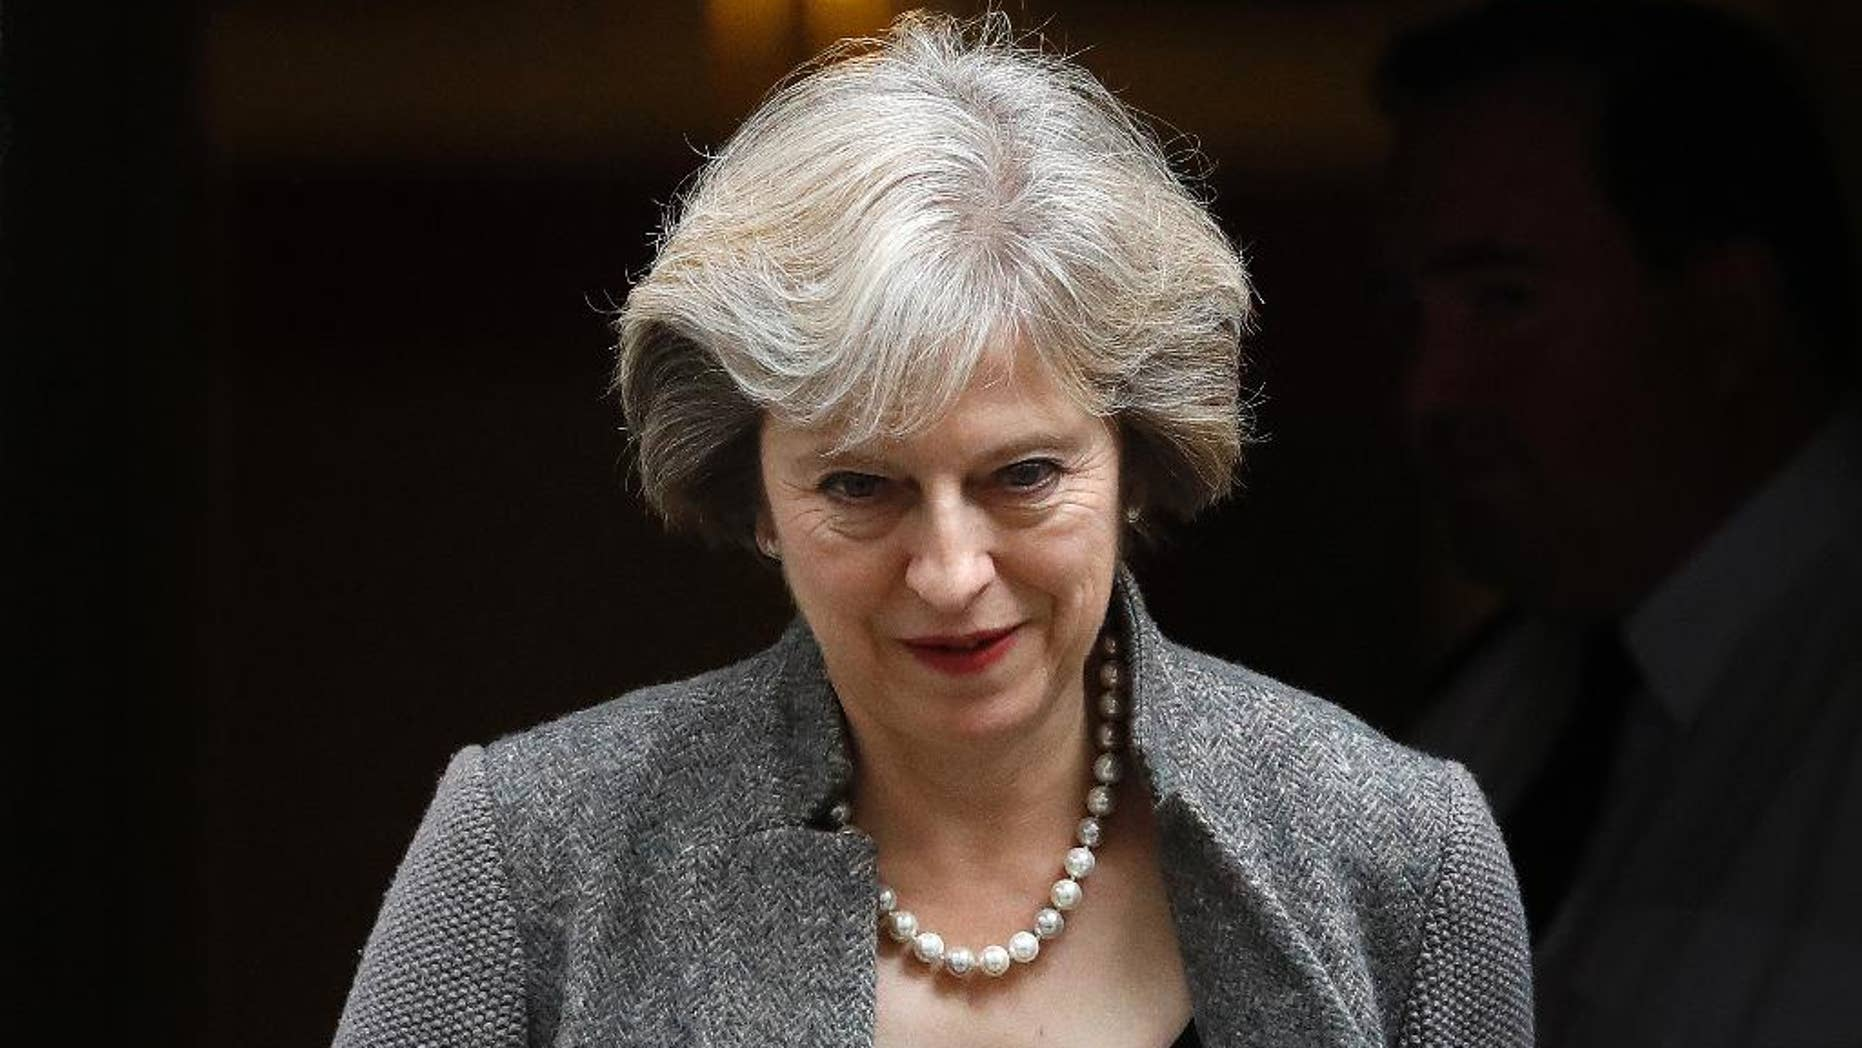 Britain's Prime Minister Theresa May leaves 10 Downing Street in London, Monday, Sept. 26, 2016. (AP Photo/Frank Augstein)